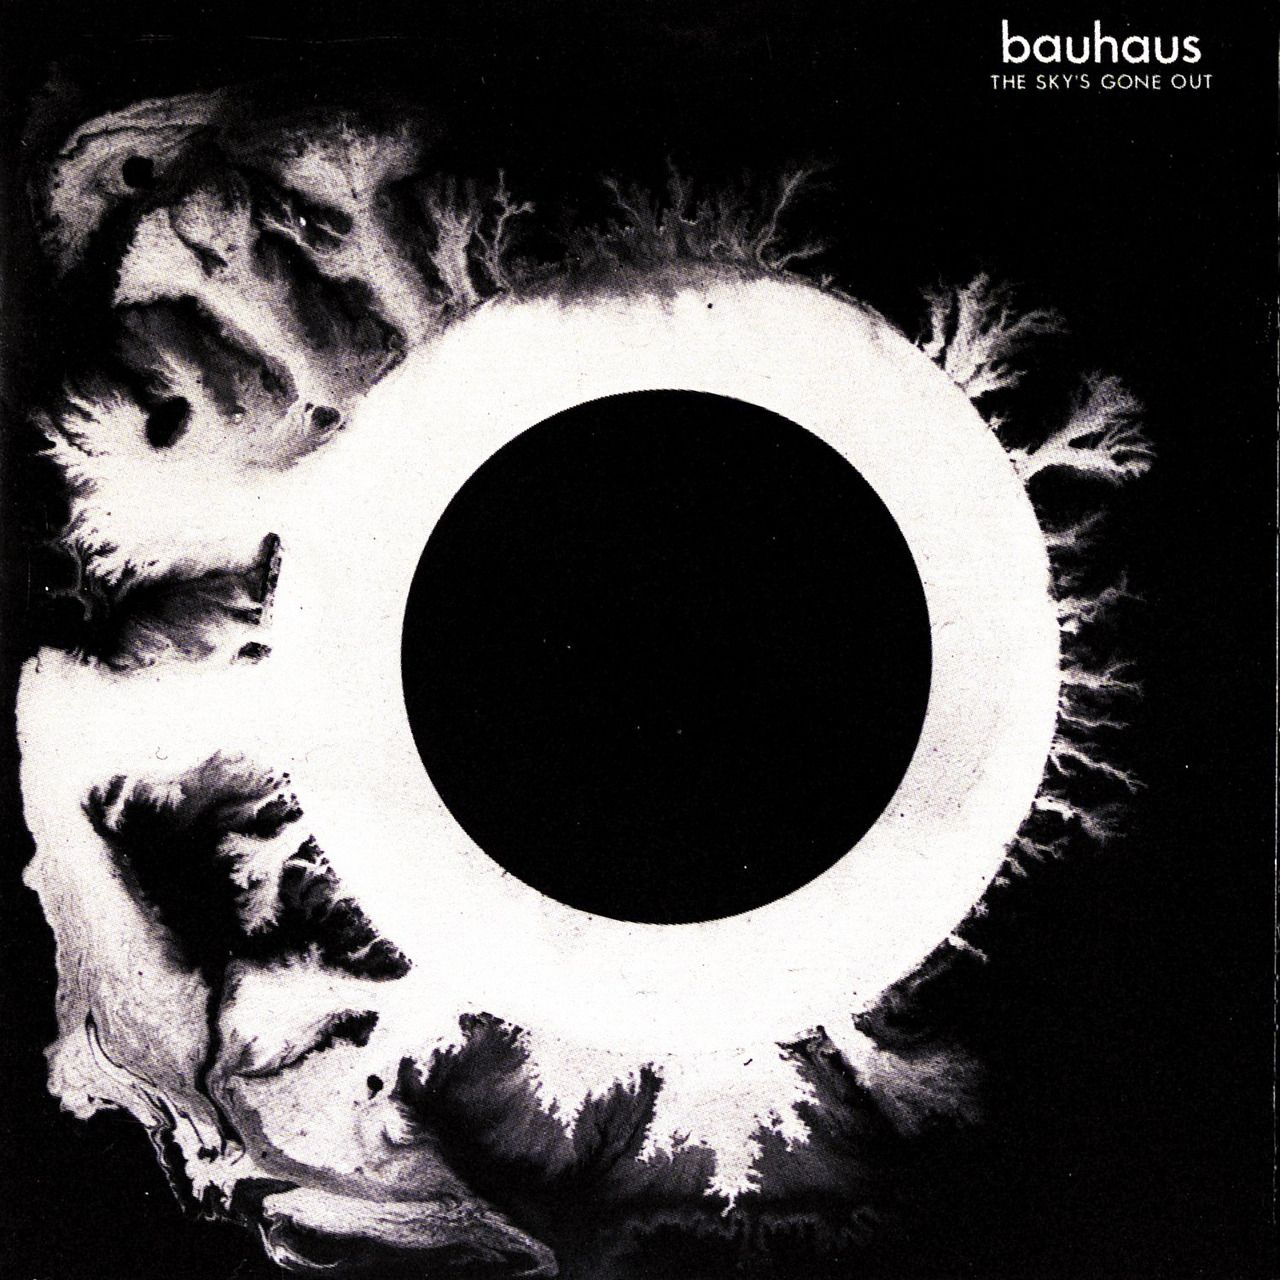 Vinyl Artwork Bauhaus The Sky S Gone Out 1982 Cover Painting